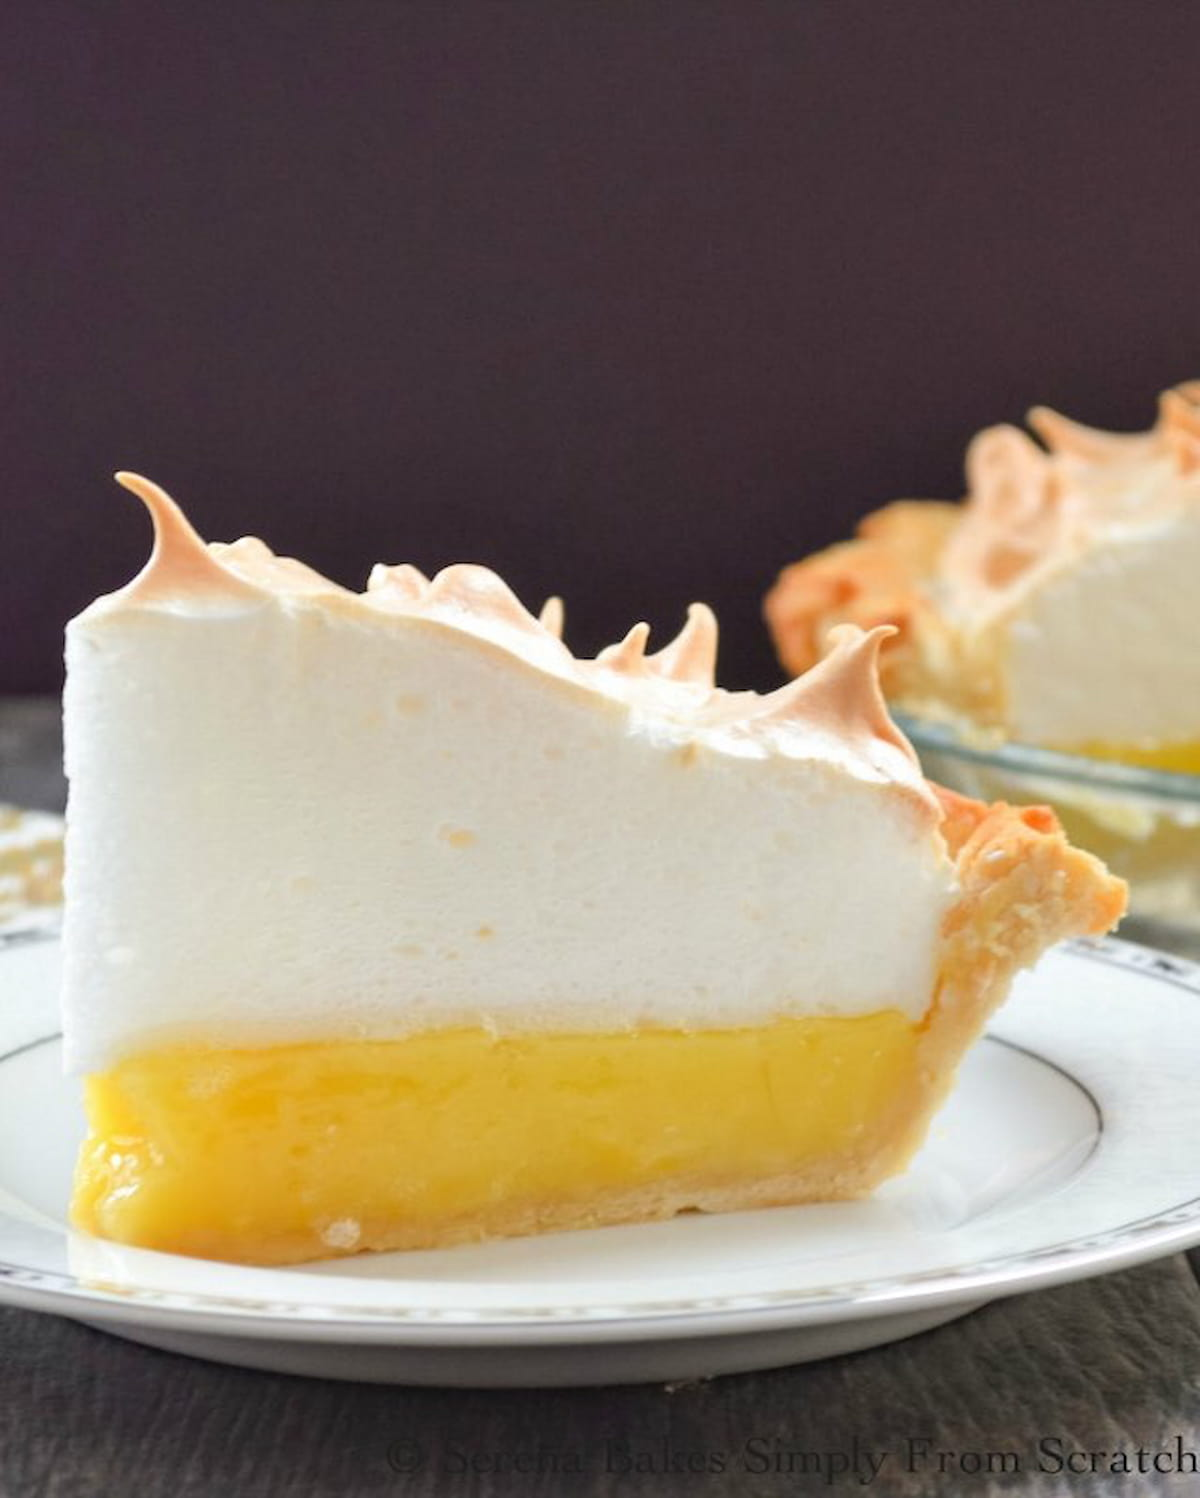 A slice of Lemon Meringue Pie topped with a weep free meringue on a white plate/